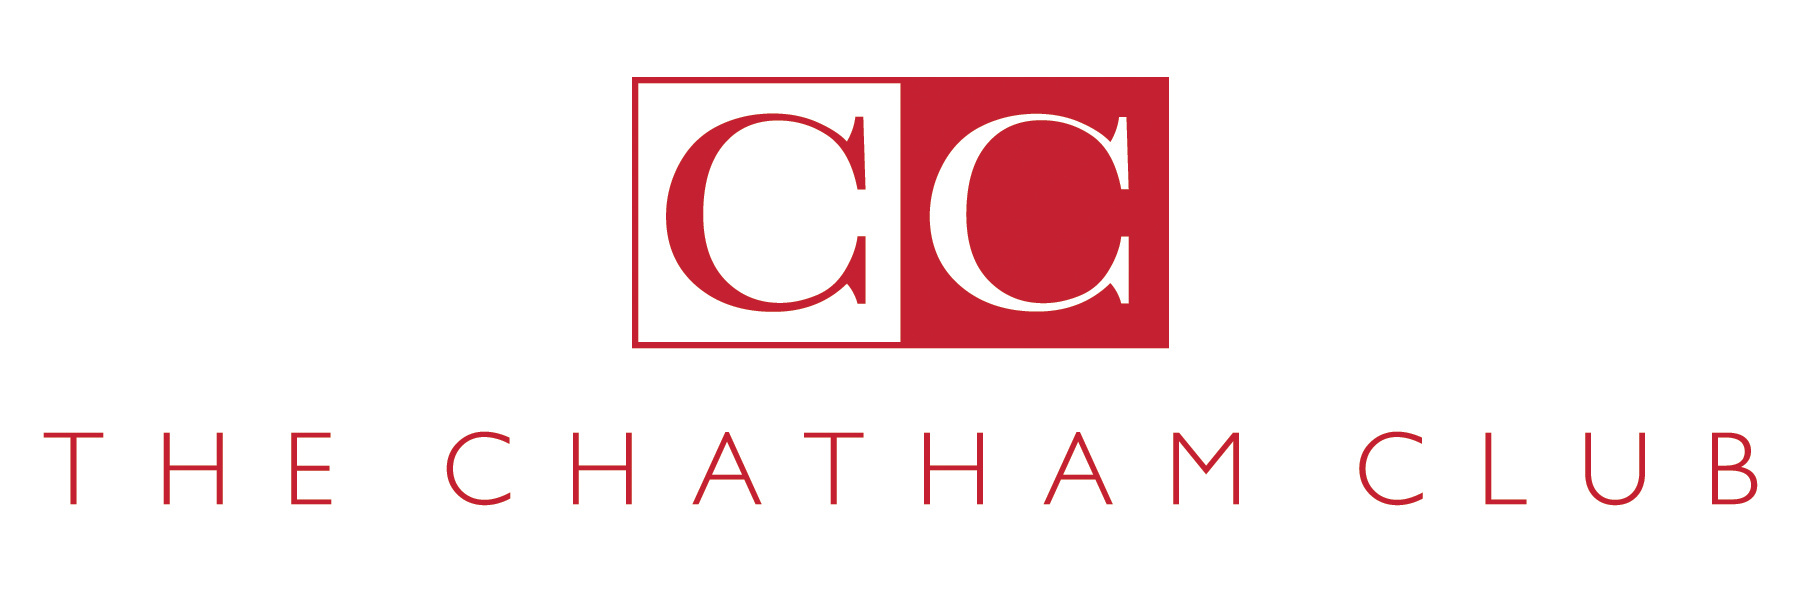 The Chatham Club